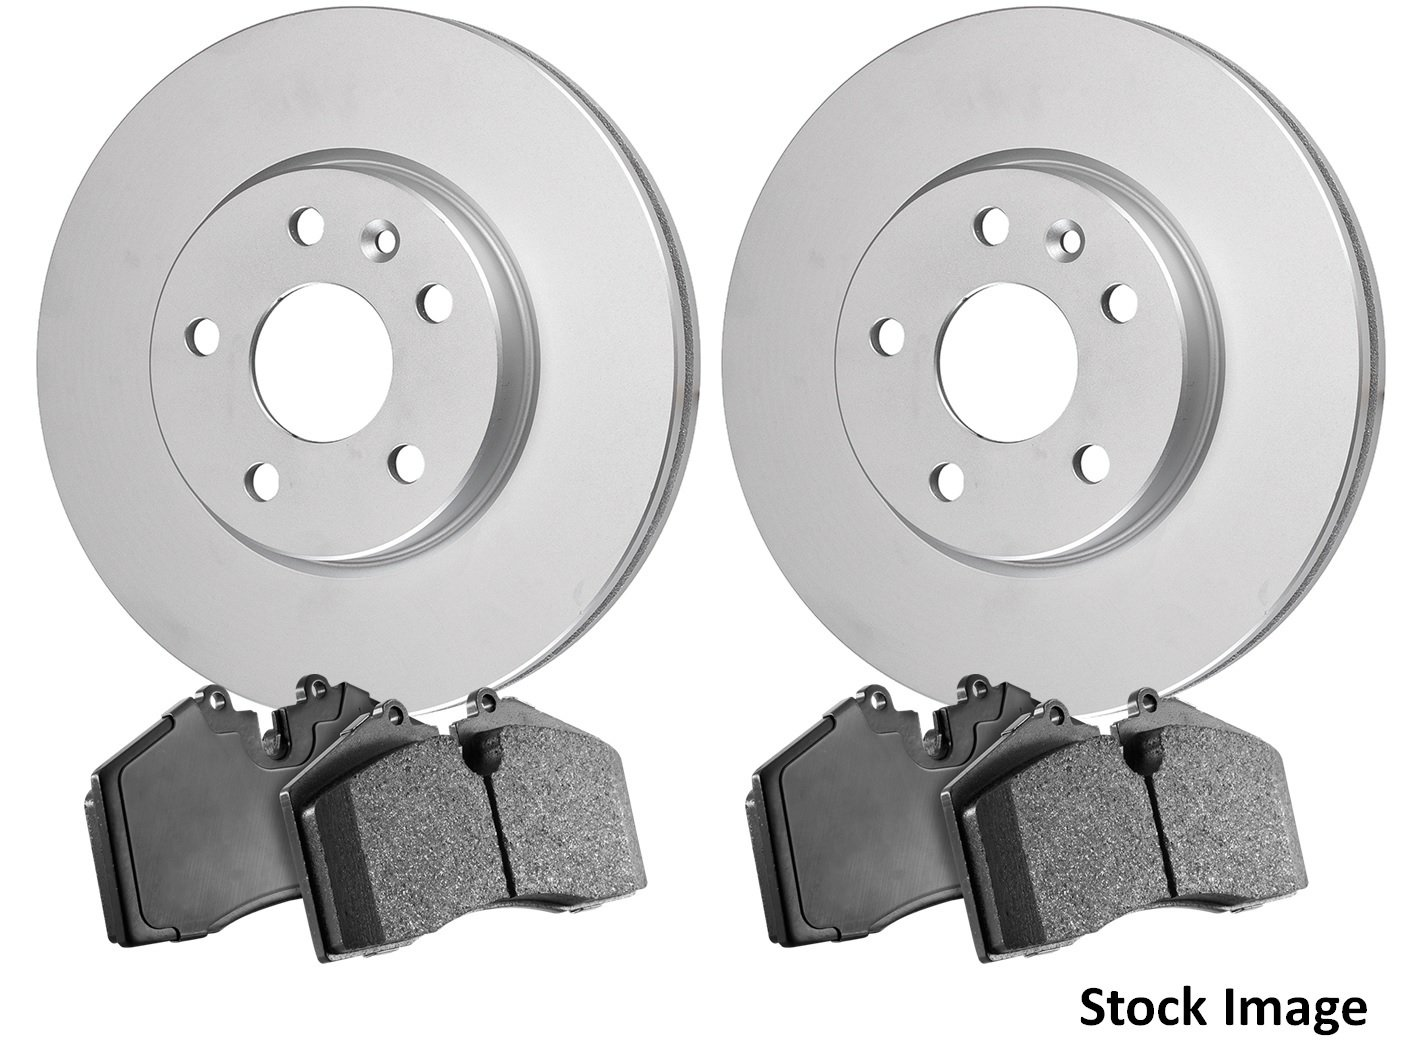 2006 For Buick Allure Front Anti Rust Coated Disc Brake Rotors and Ceramic Brake Pads